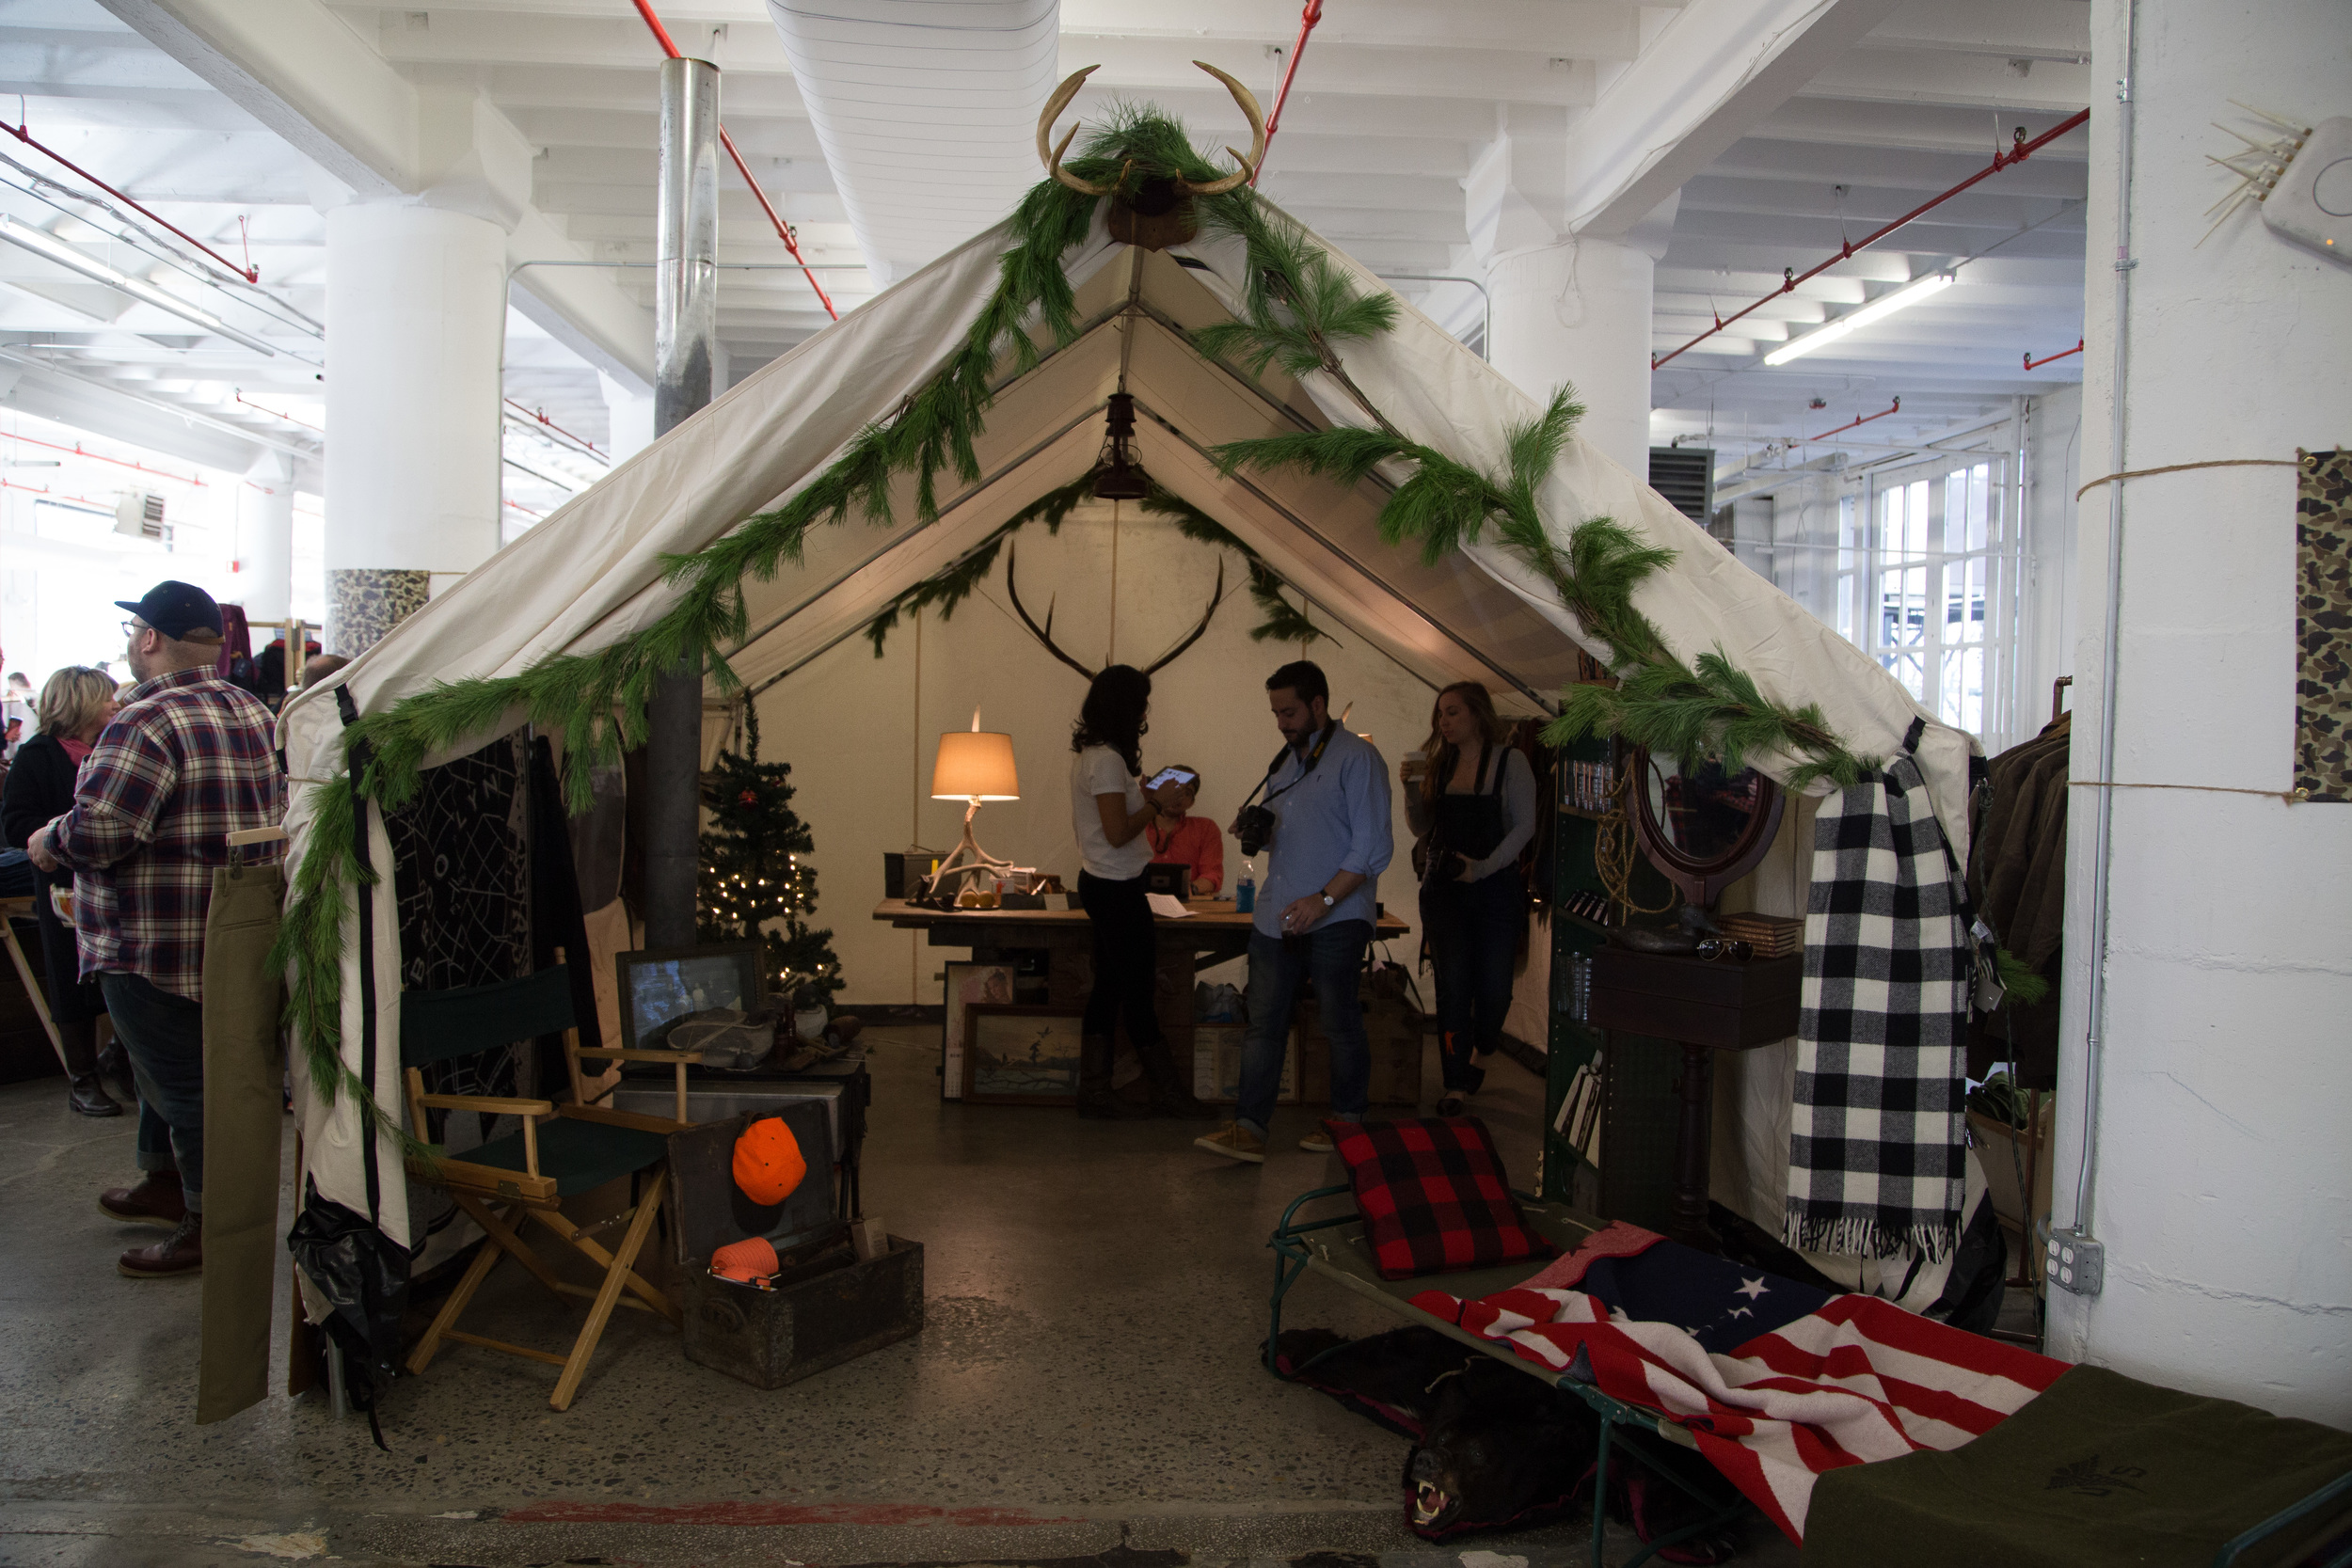 The Ball and Buck tent.